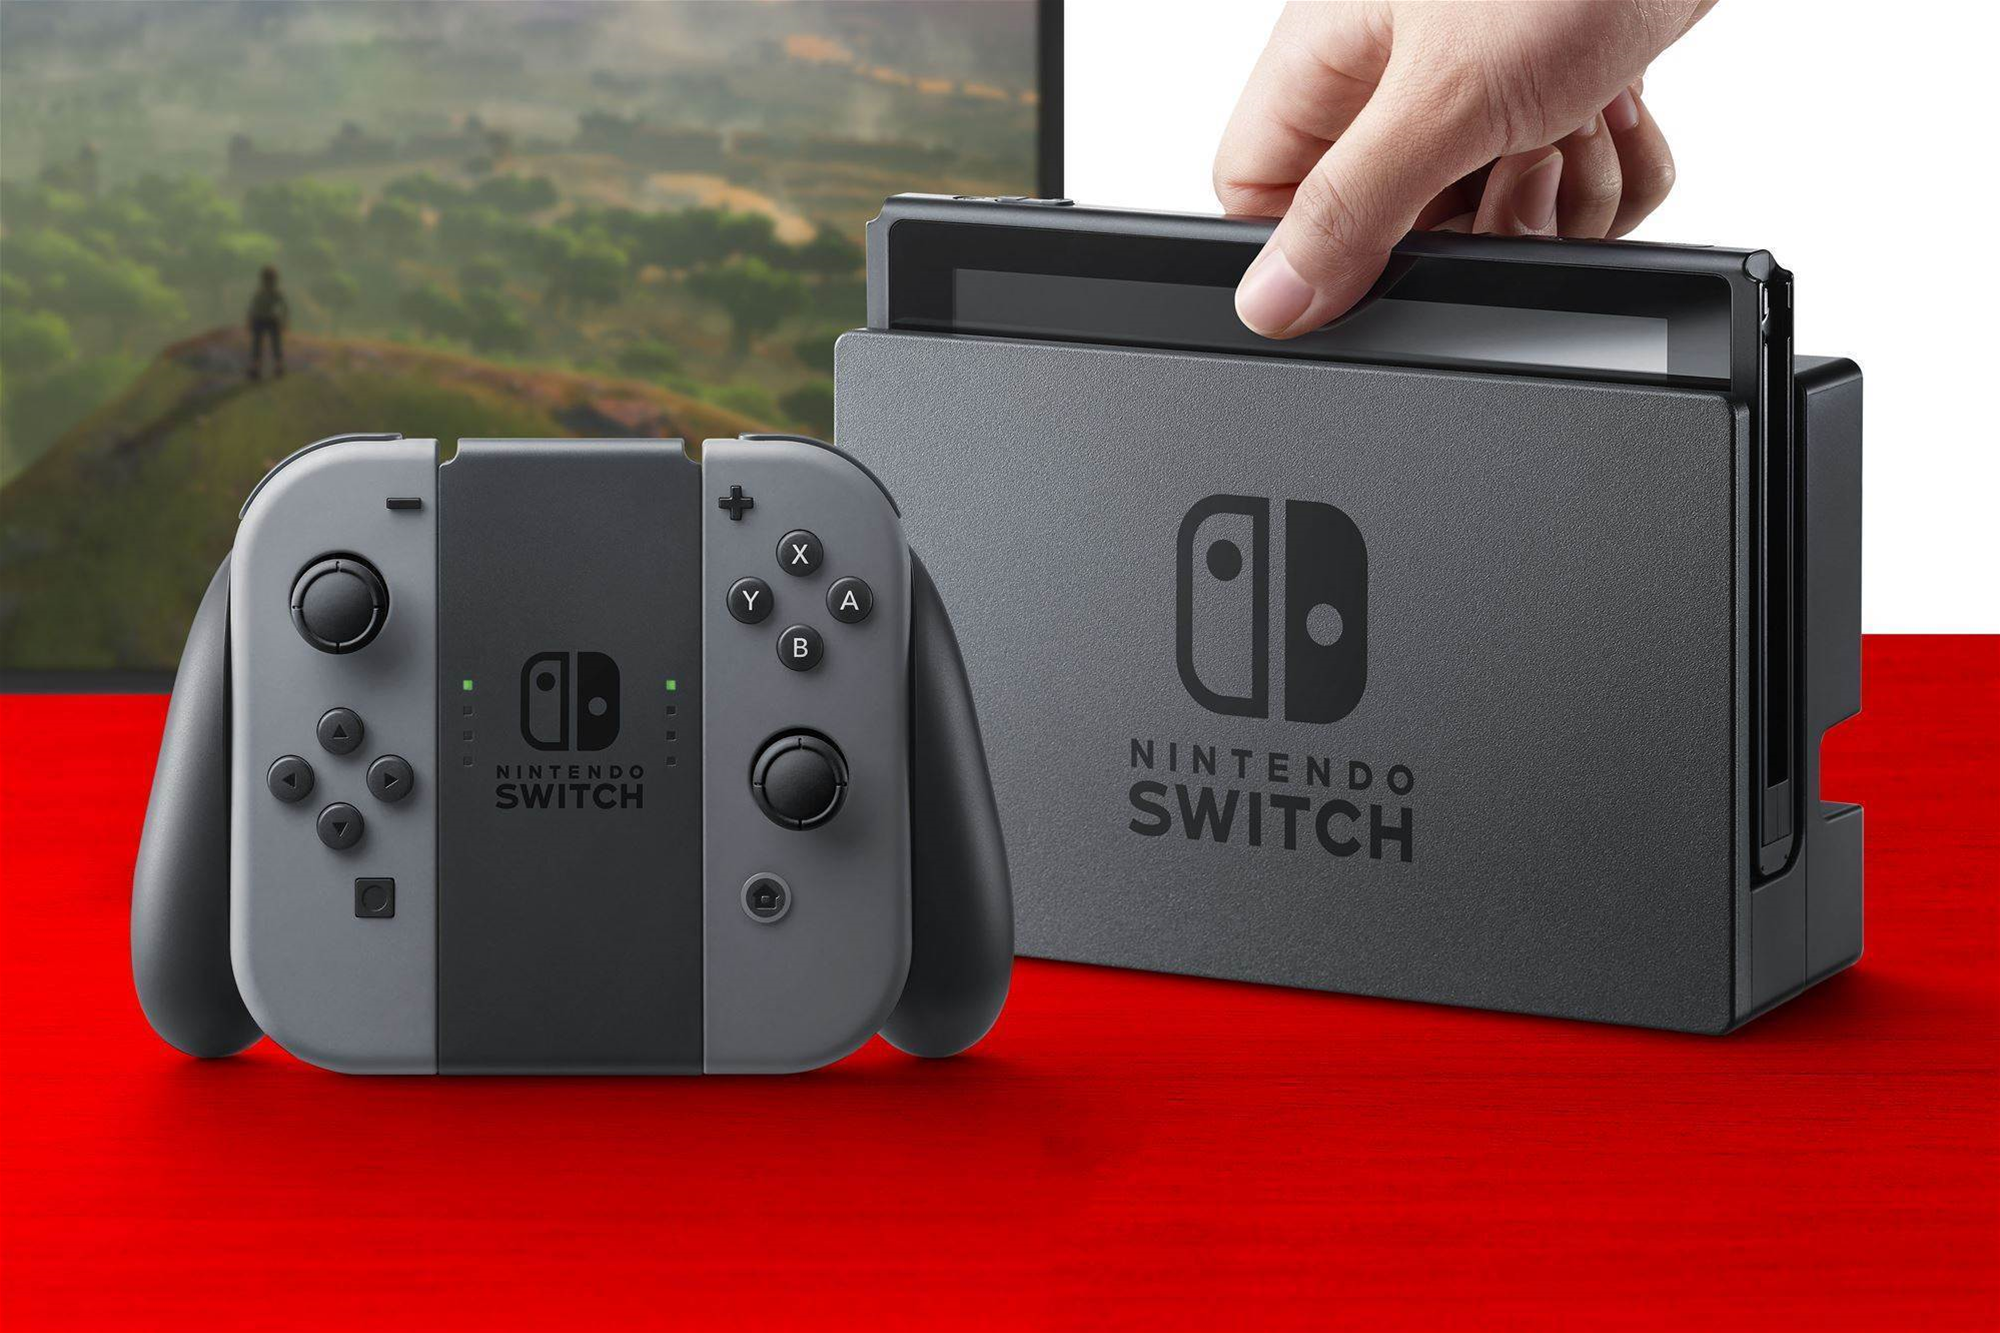 Nintendo Switch won't support video streaming services on launch